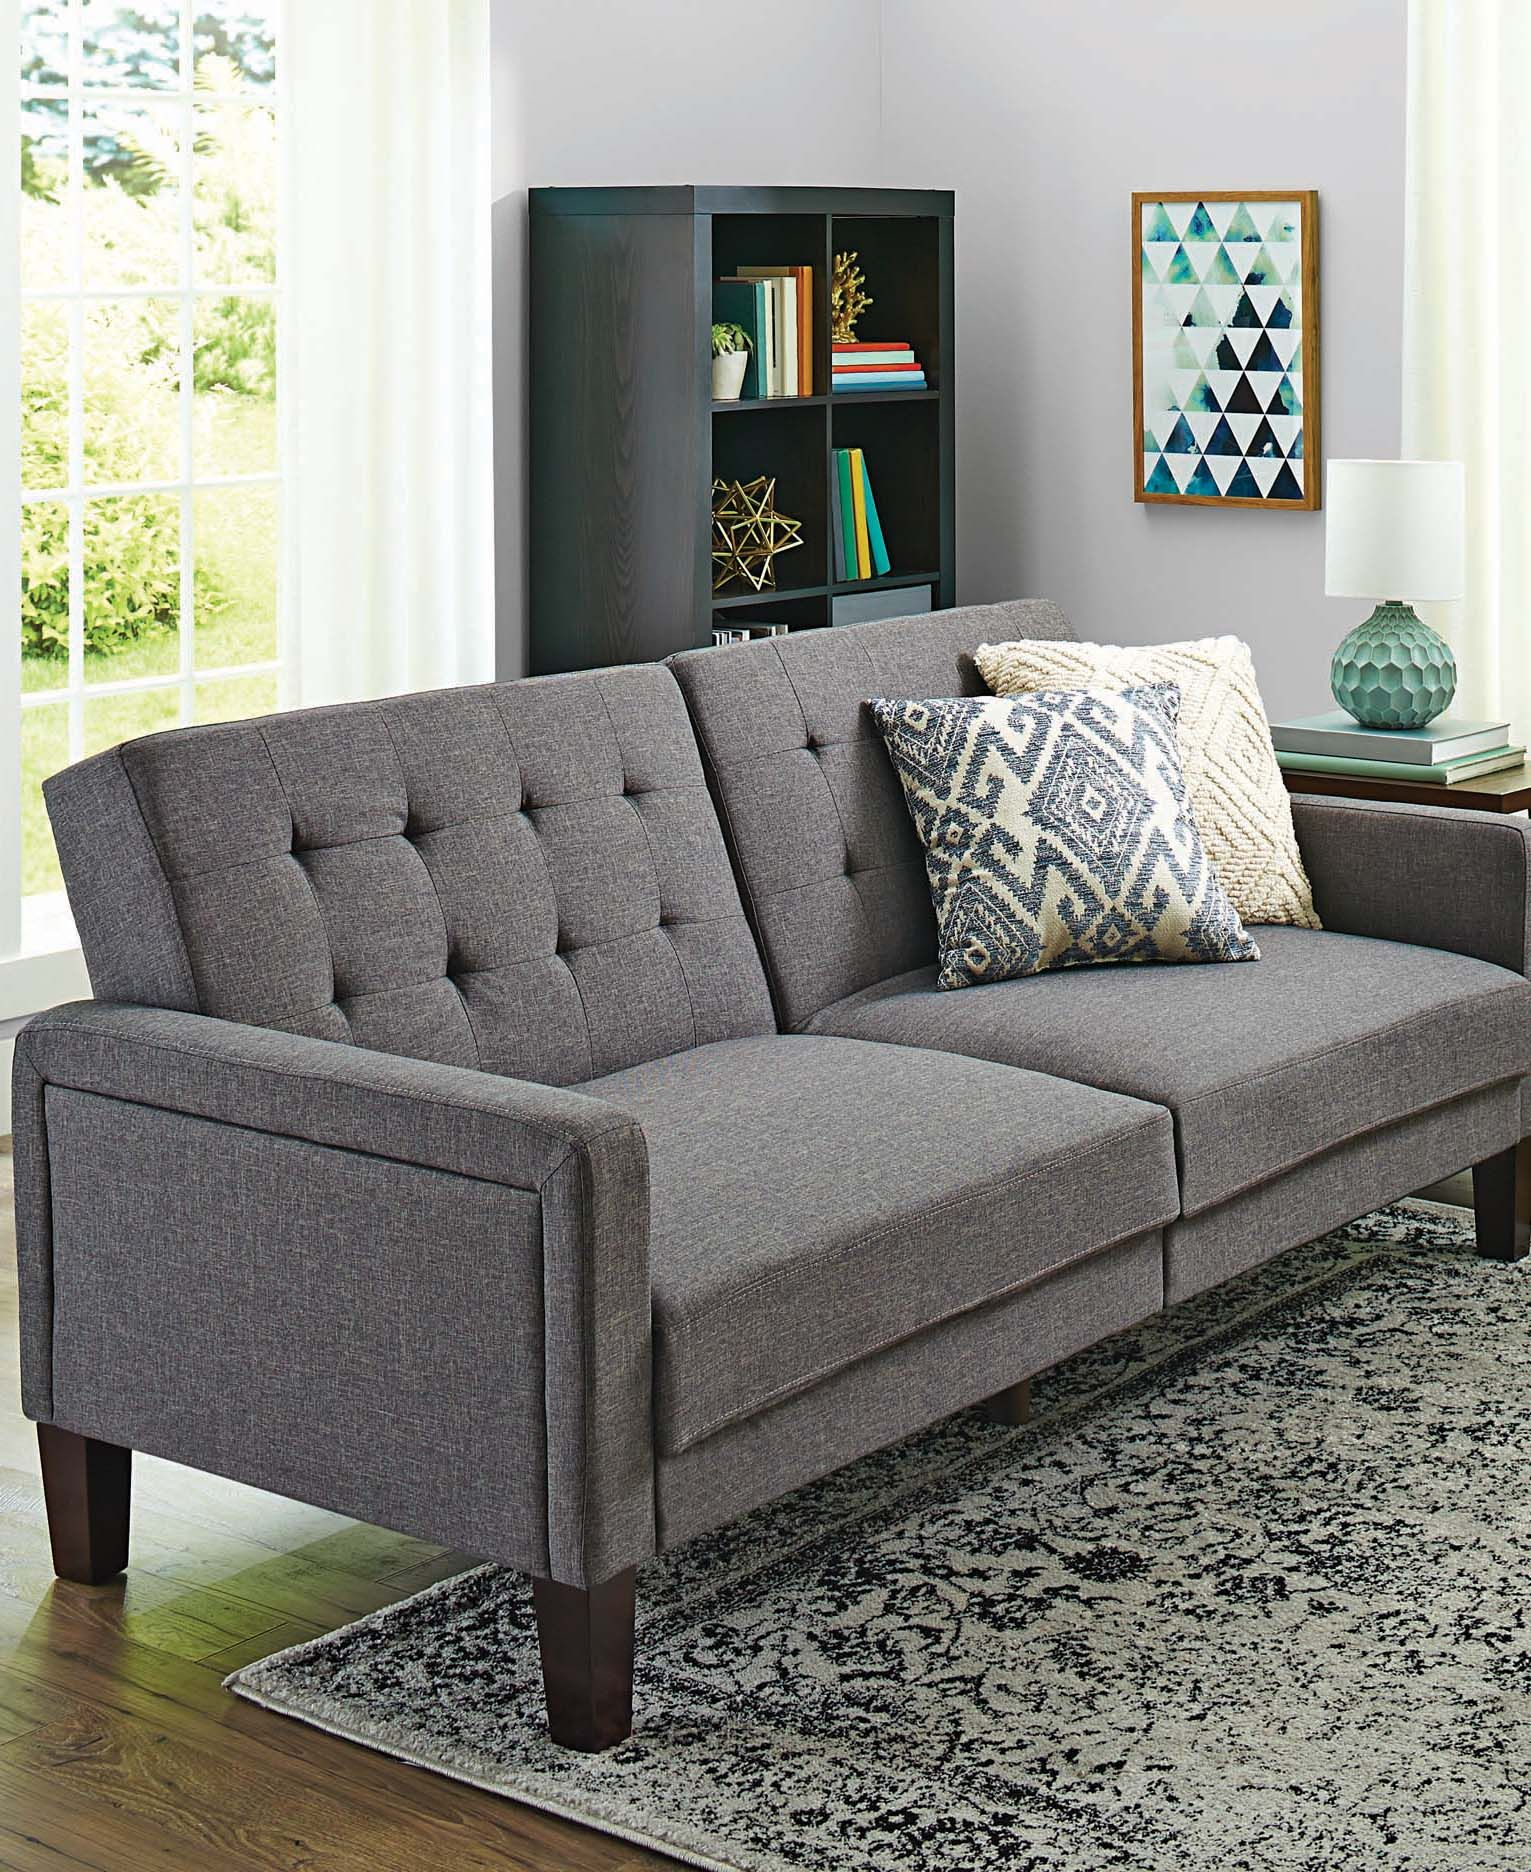 Better Homes And Gardens Futon : better, homes, gardens, futon, Better, Homes, Gardens, Porter, Fabric, Tufted, Linen, Walmart.com, Futon, Living, Room,, Comfortable, Family, Decorating